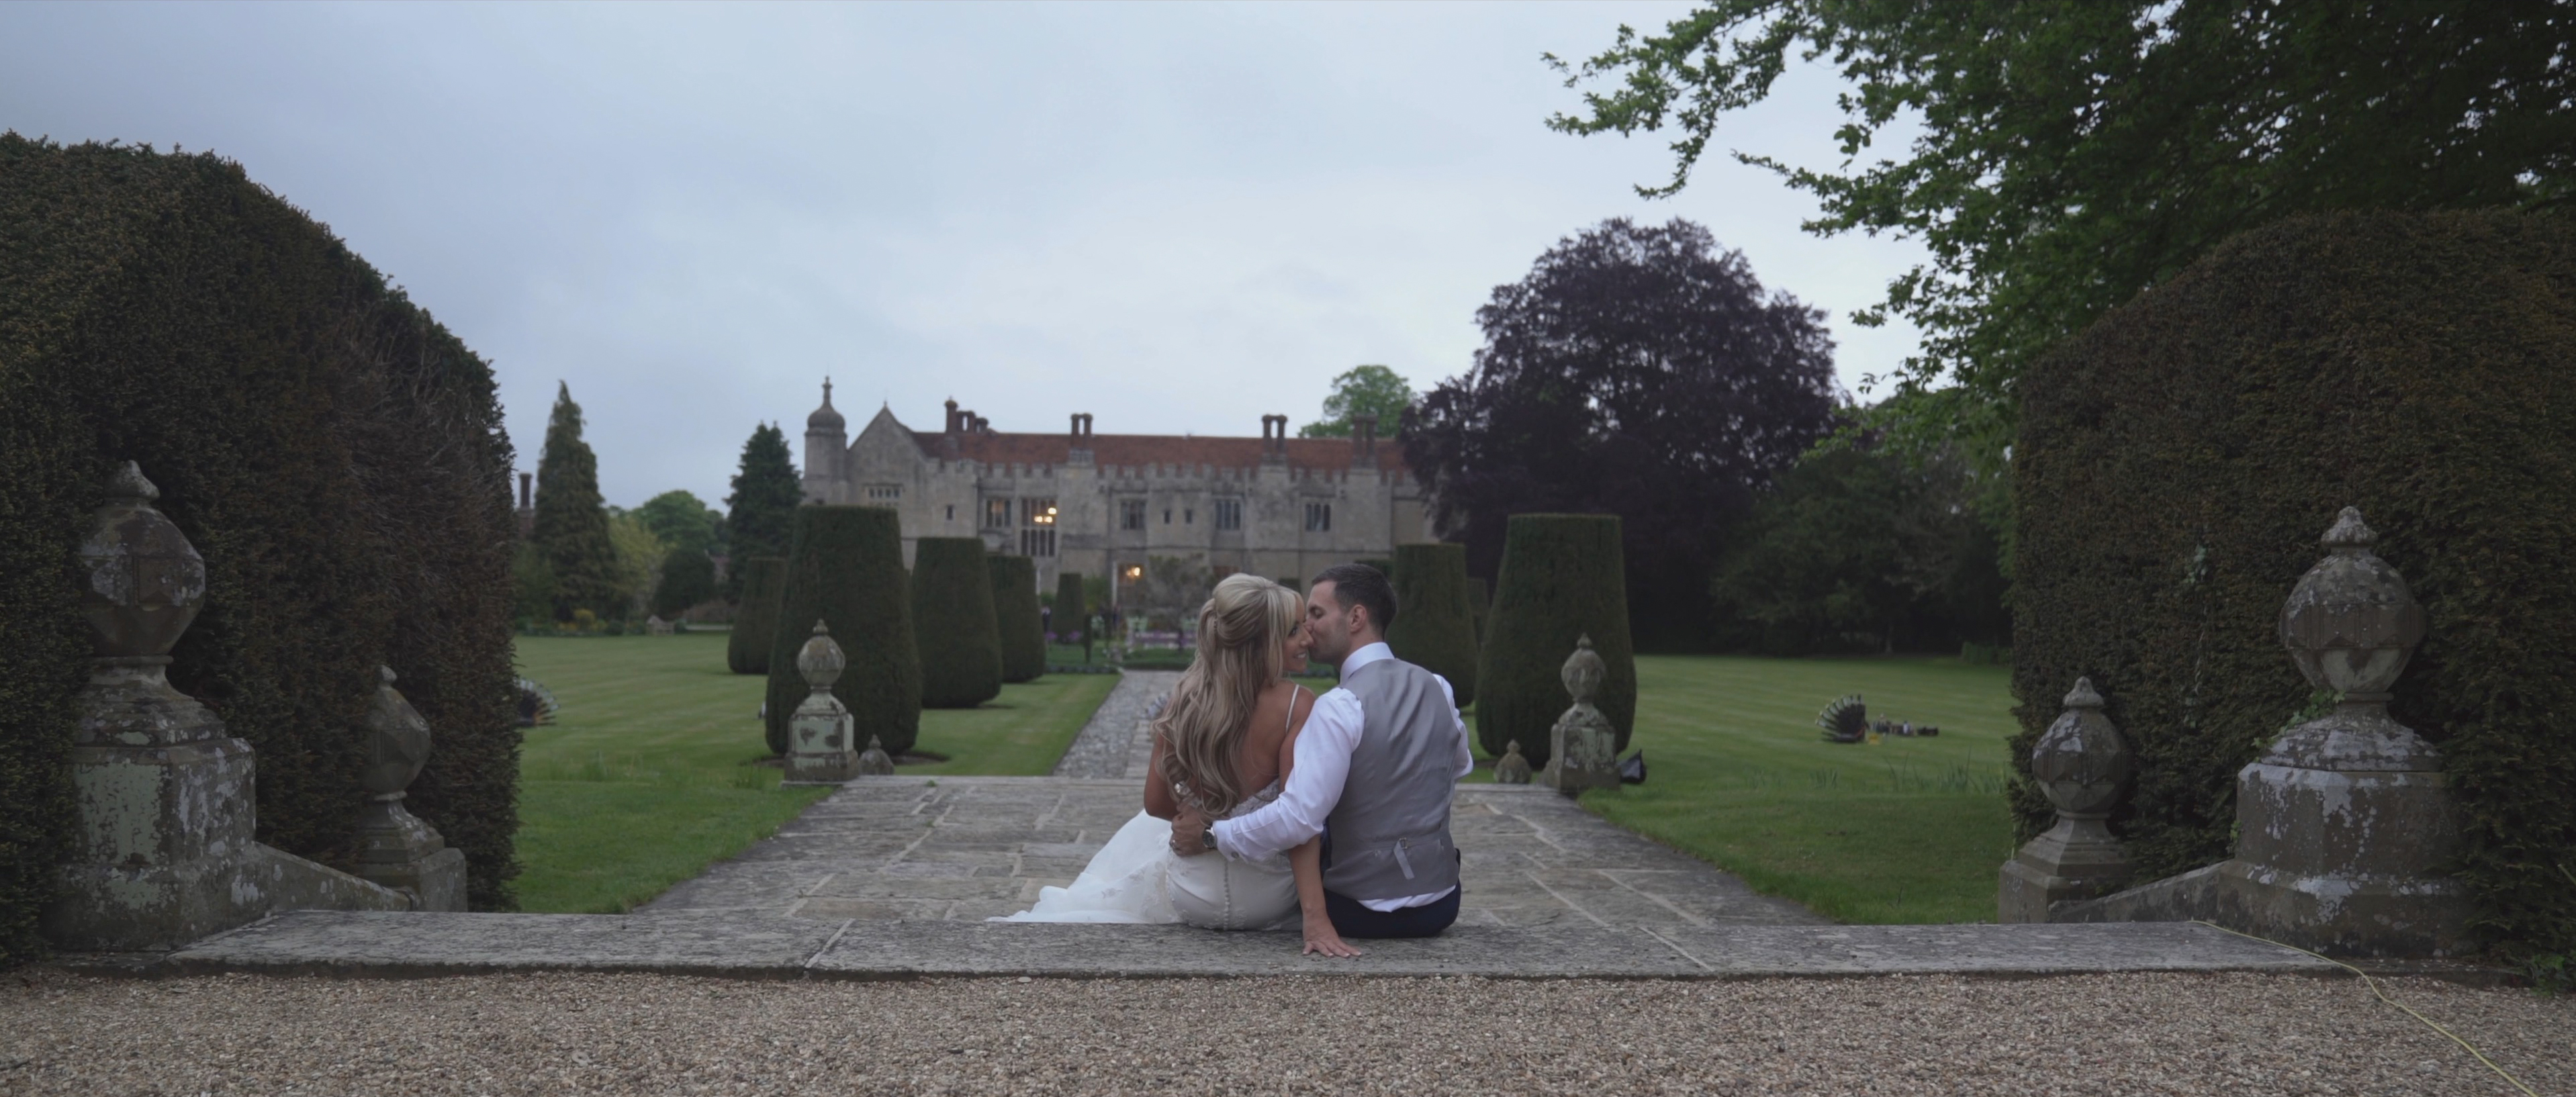 Kate + Kevin | Bury St Edmunds, United Kingdom | Hengrave Hall